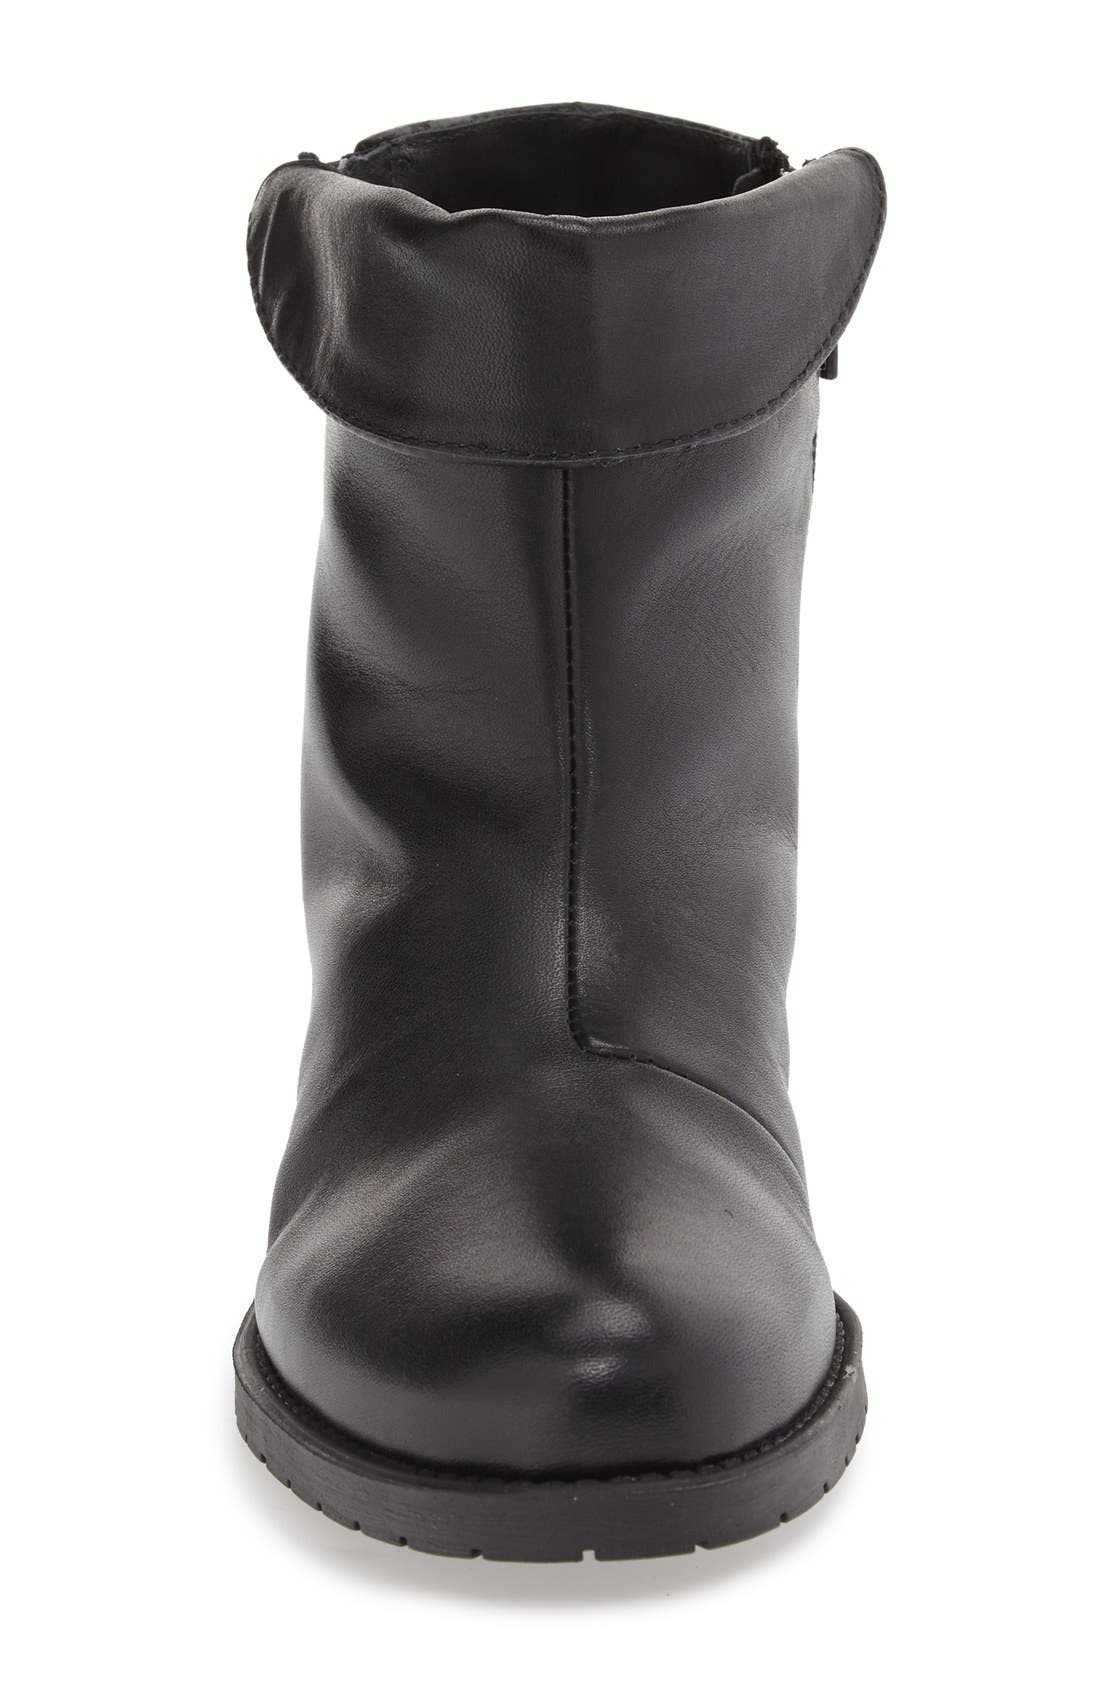 'Borano' Slouchy Waterproof Bootie,                             Alternate thumbnail 3, color,                             Black Crinkle Patent Leather